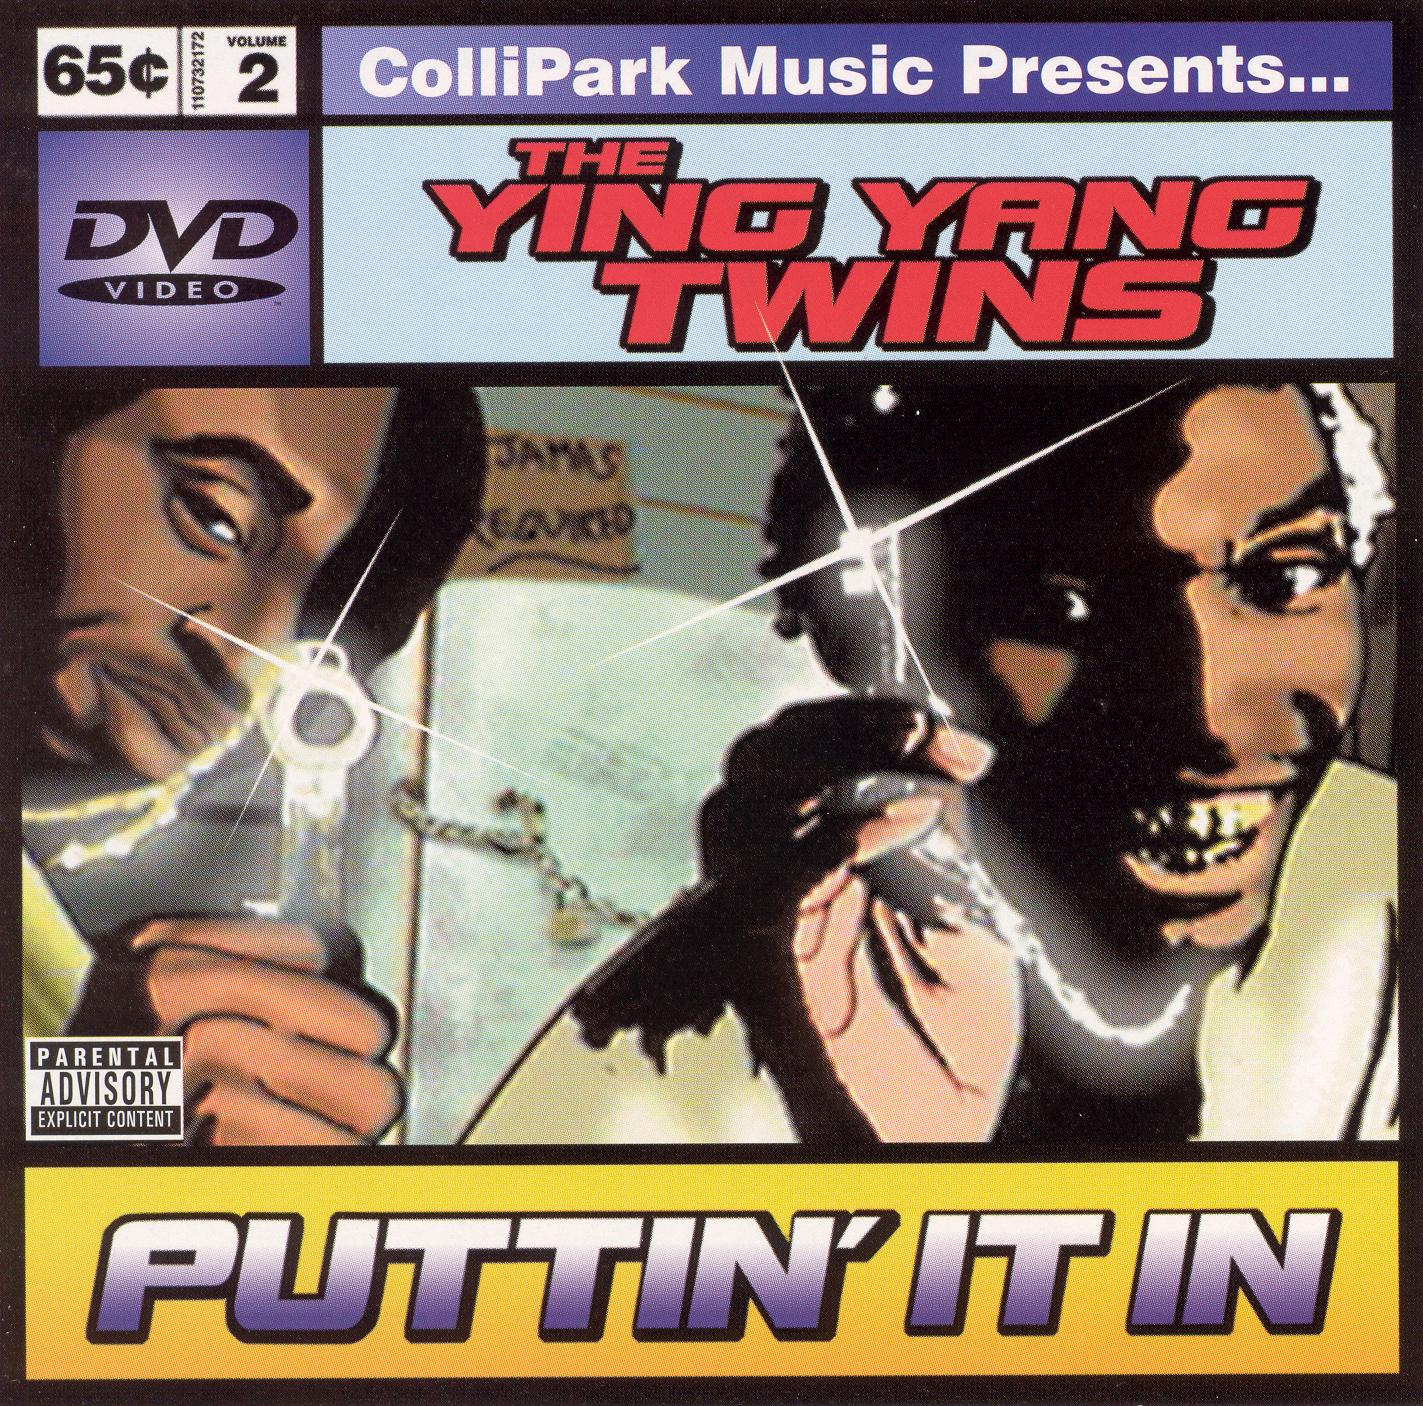 Ying Yang Twins: Puttin' It In